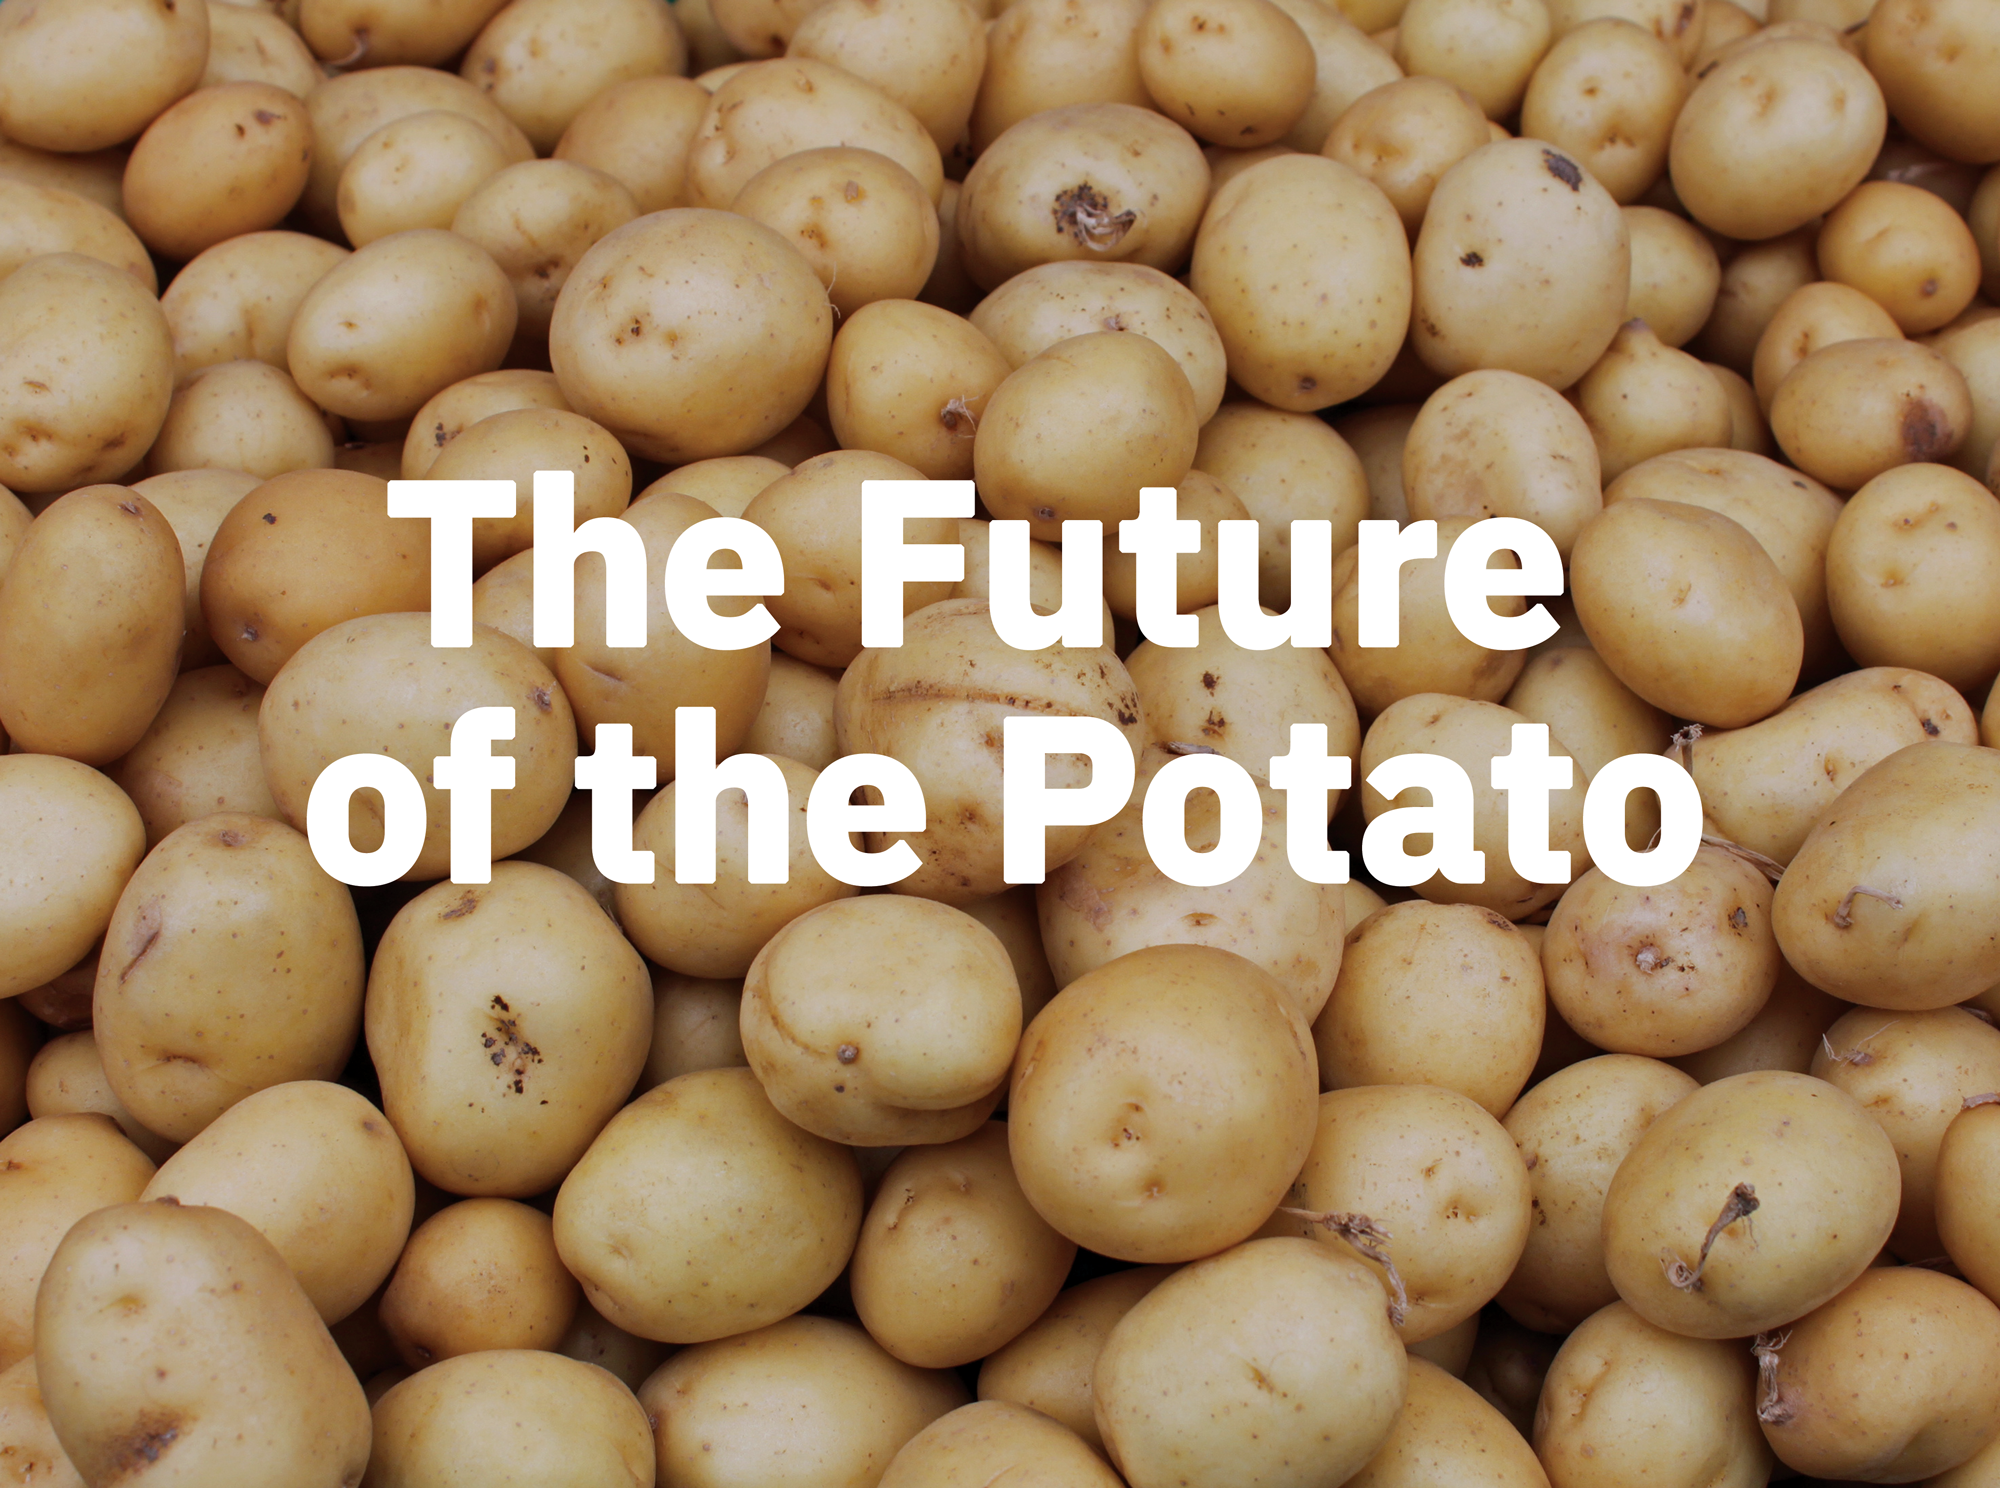 potatoOfTheFuture.png